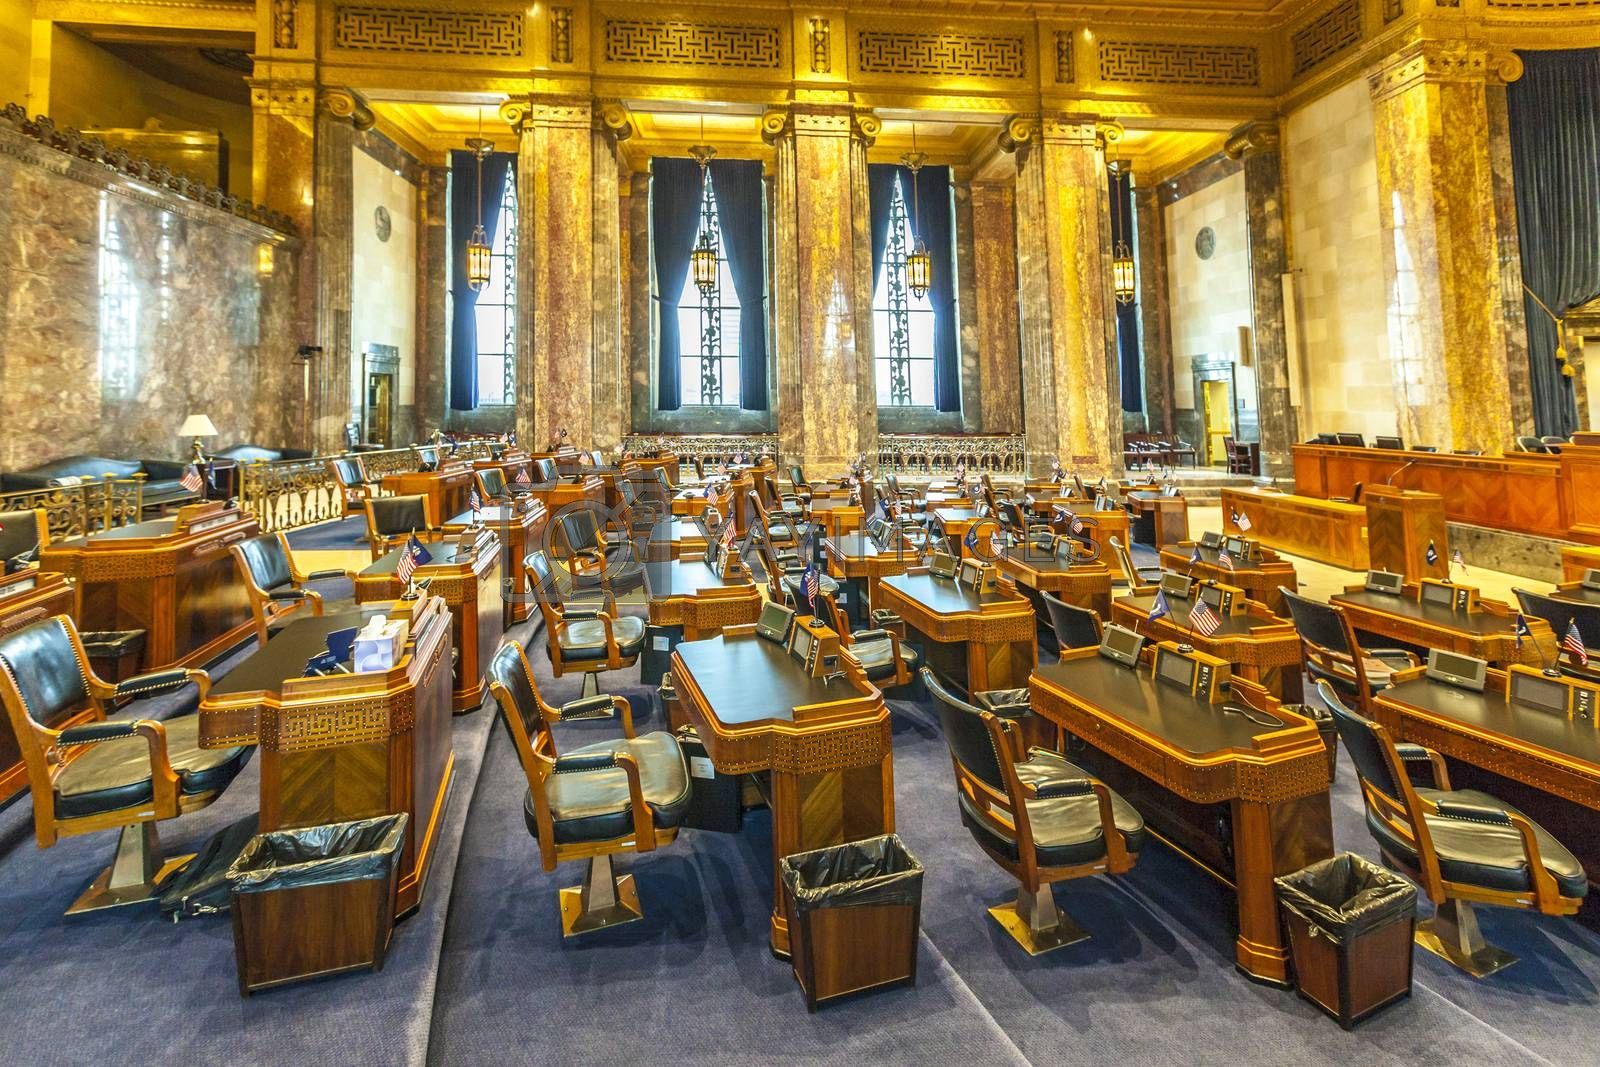 Baton Rouge, USA - July 13:  the house of chambers in Louisiana State Capitol on July 13,2013 in Baton Rouge, USA. The New State Capitol was build in 1930 and is still in use by Louisianan politician.